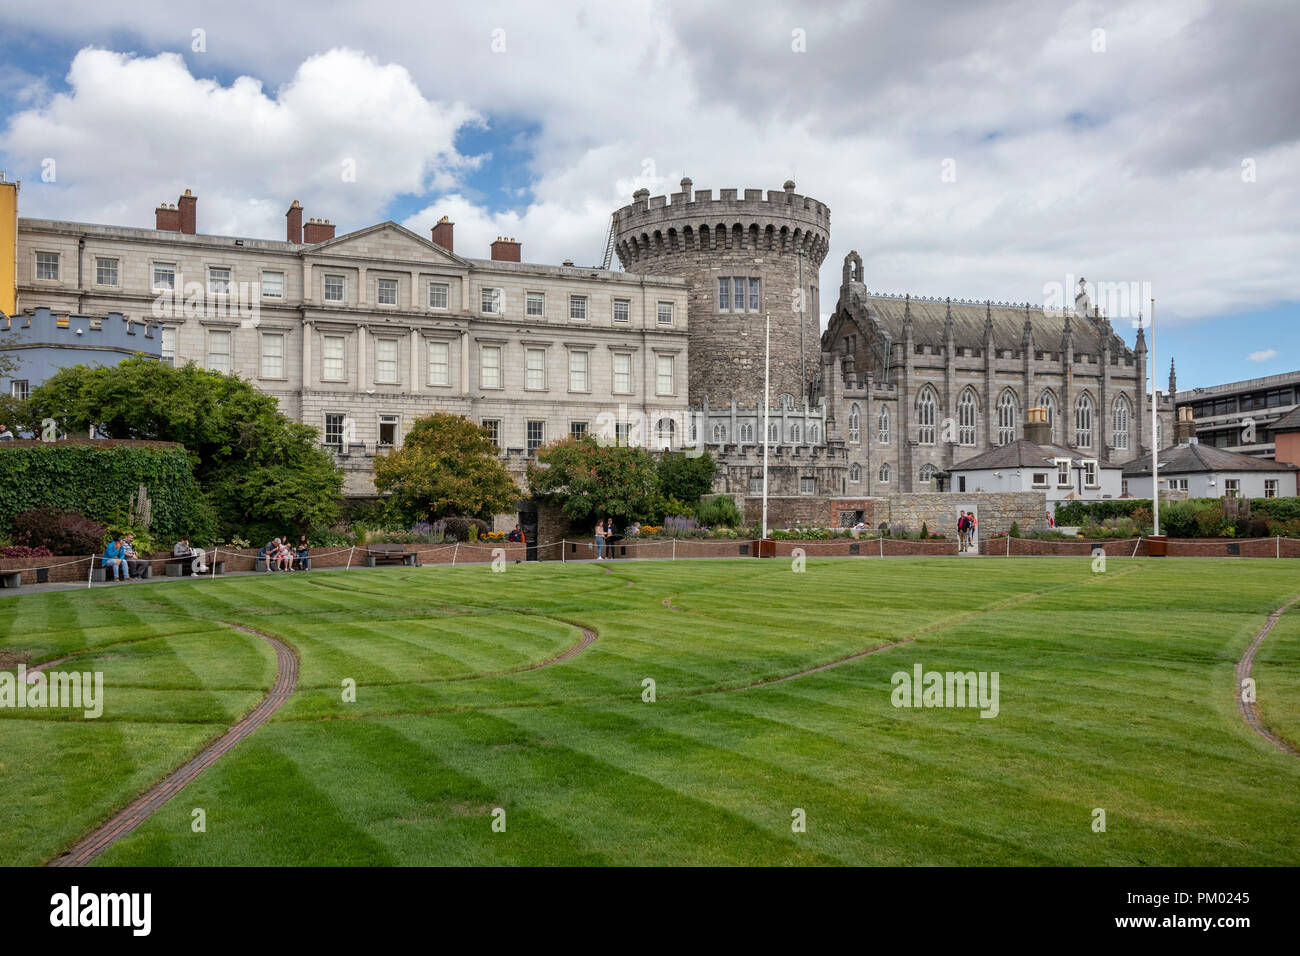 Dublin Castle, Dublin, Ireland, Europe. Stock Photo